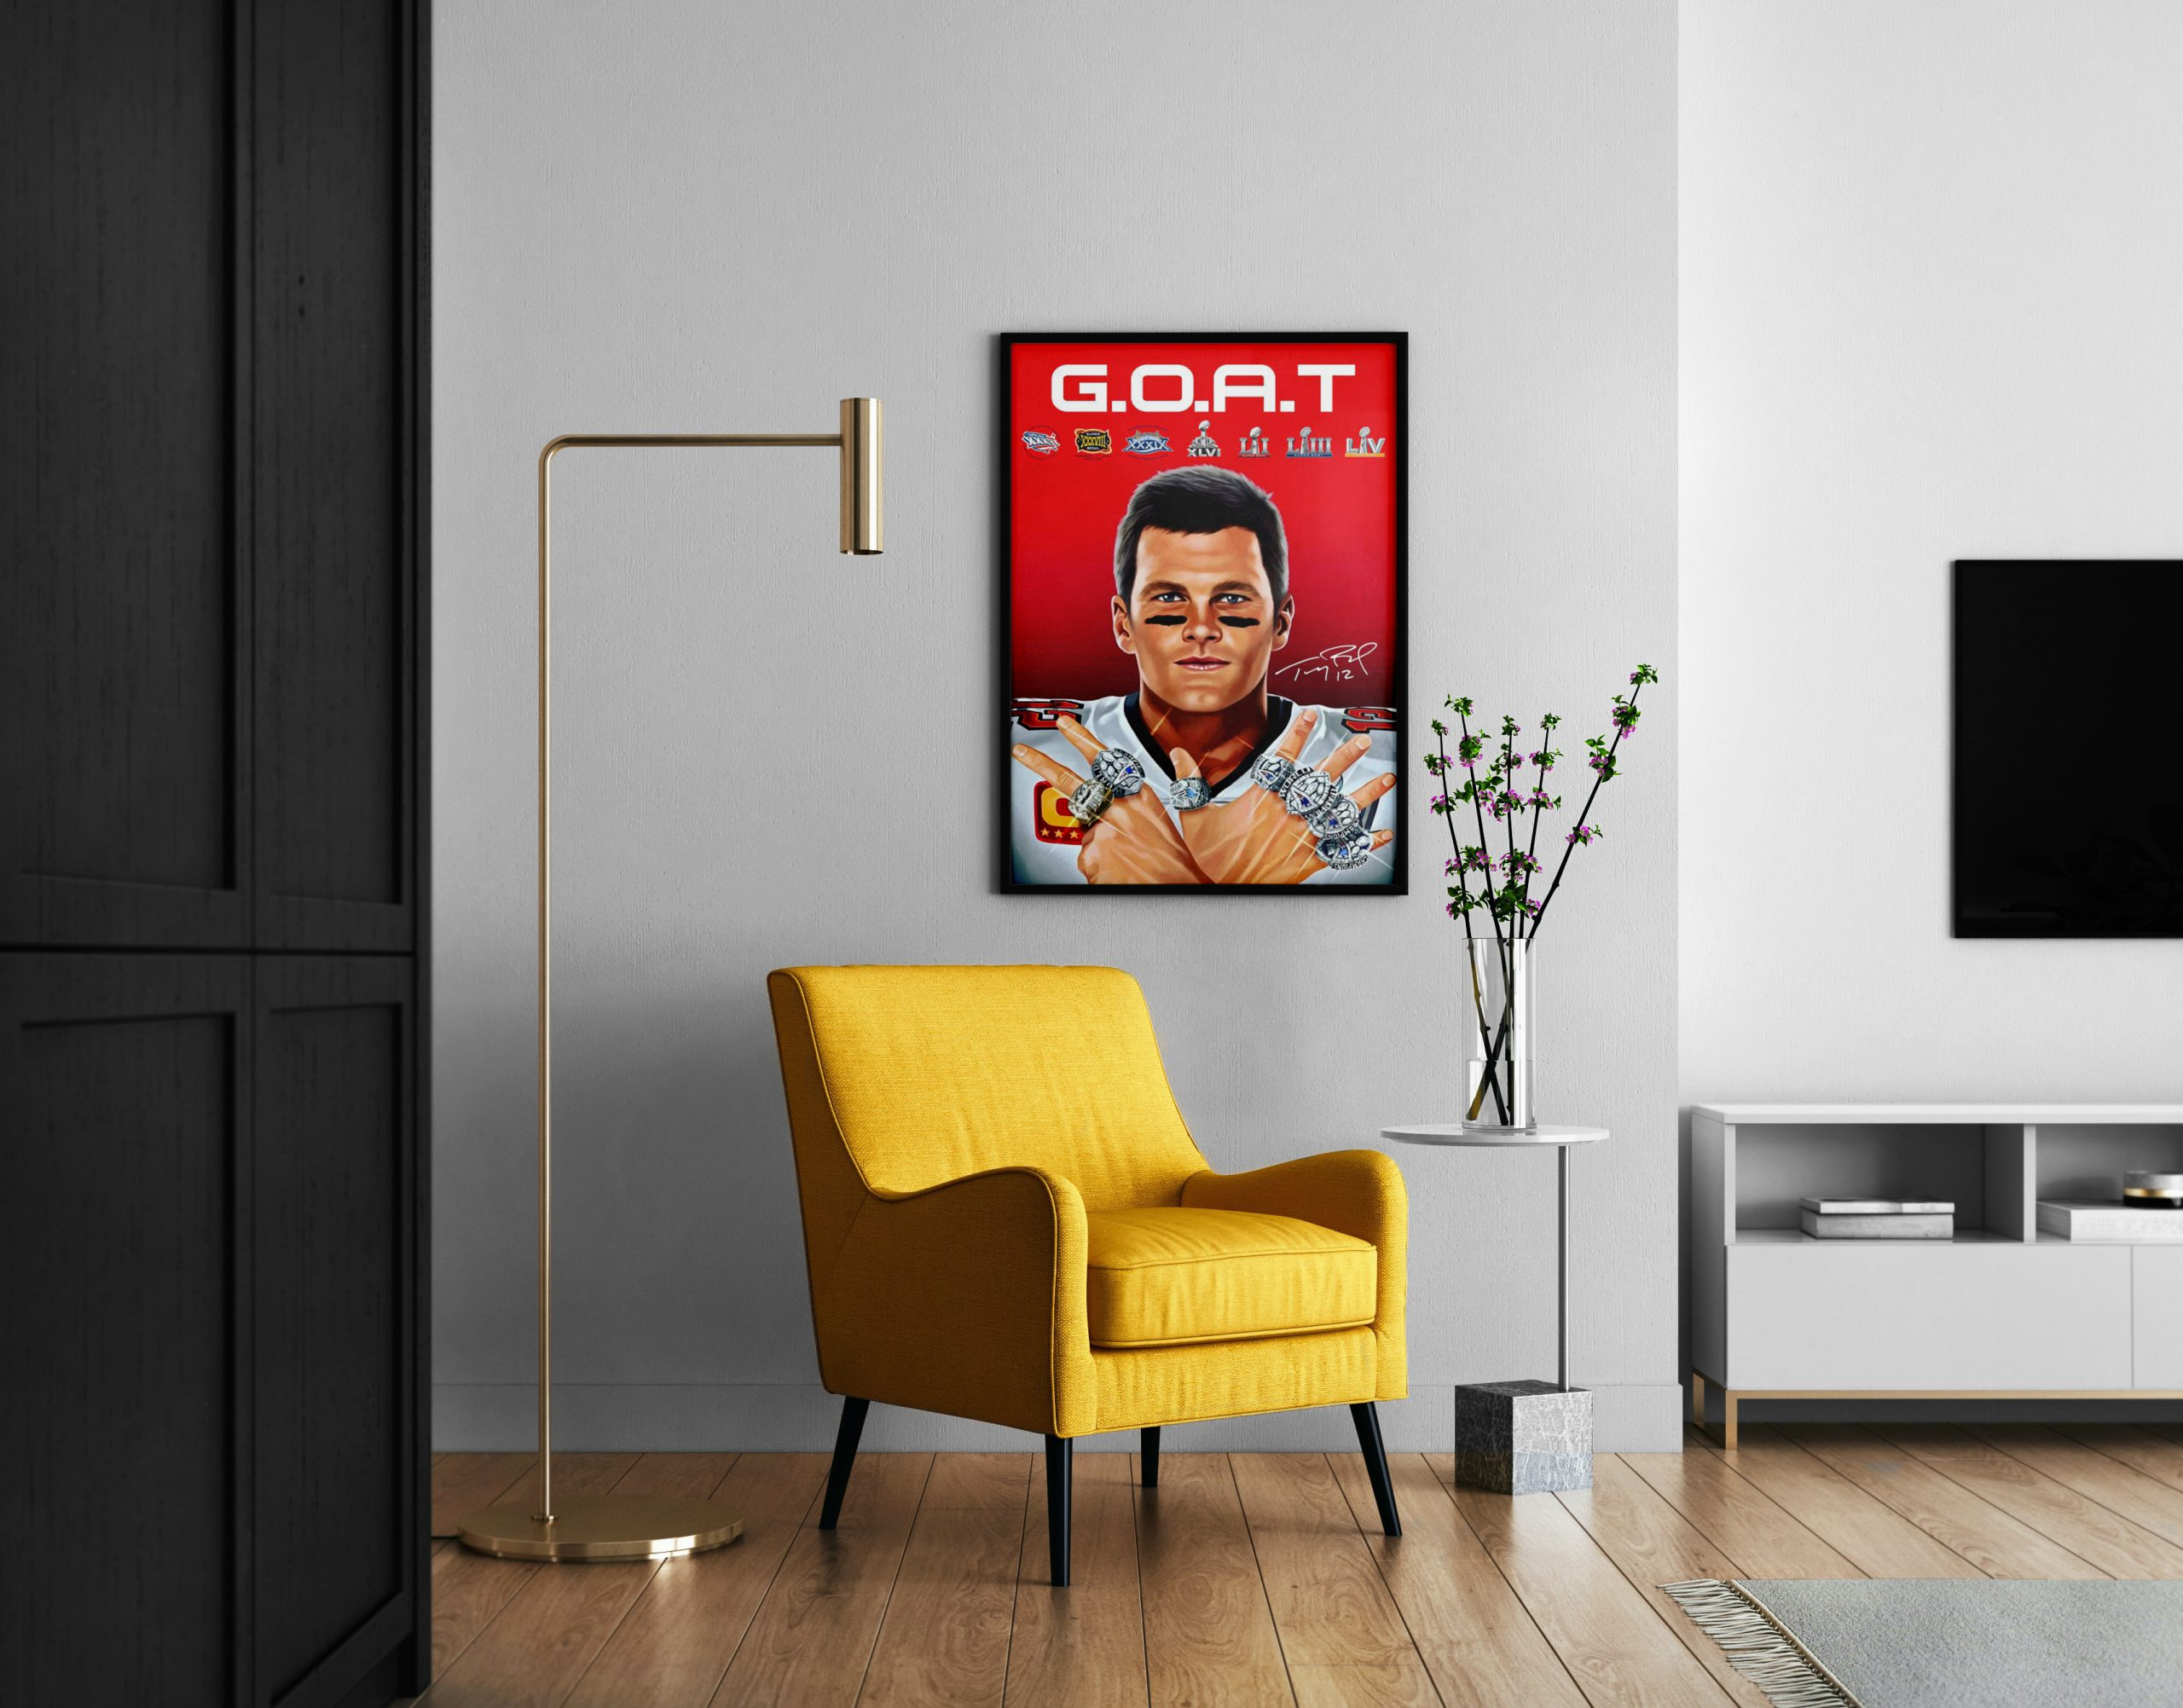 GOAT Tom Brady 2021 Greatest of all time poster